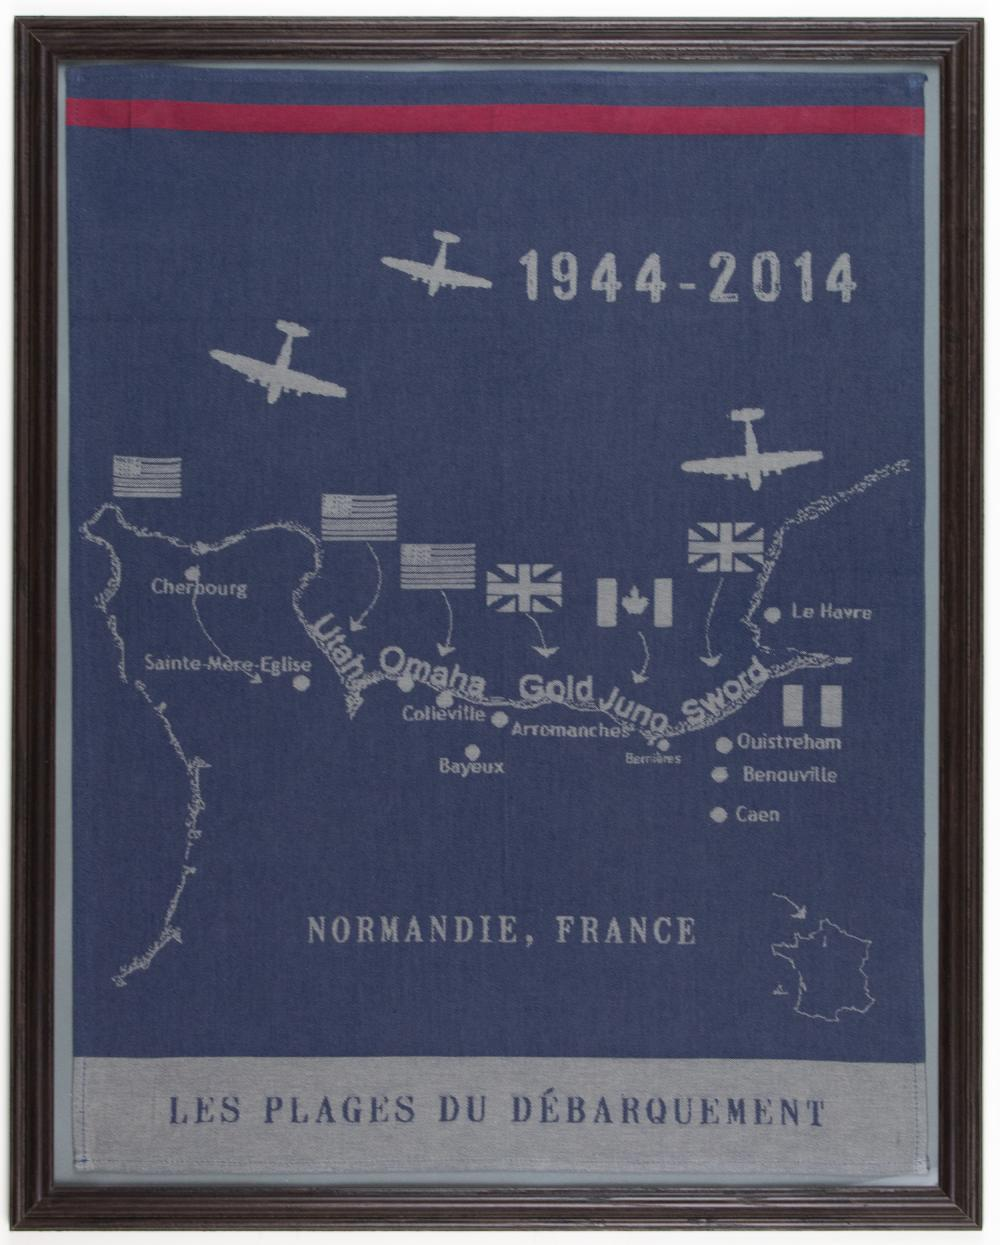 D-DAY INVASION TAPESTRY